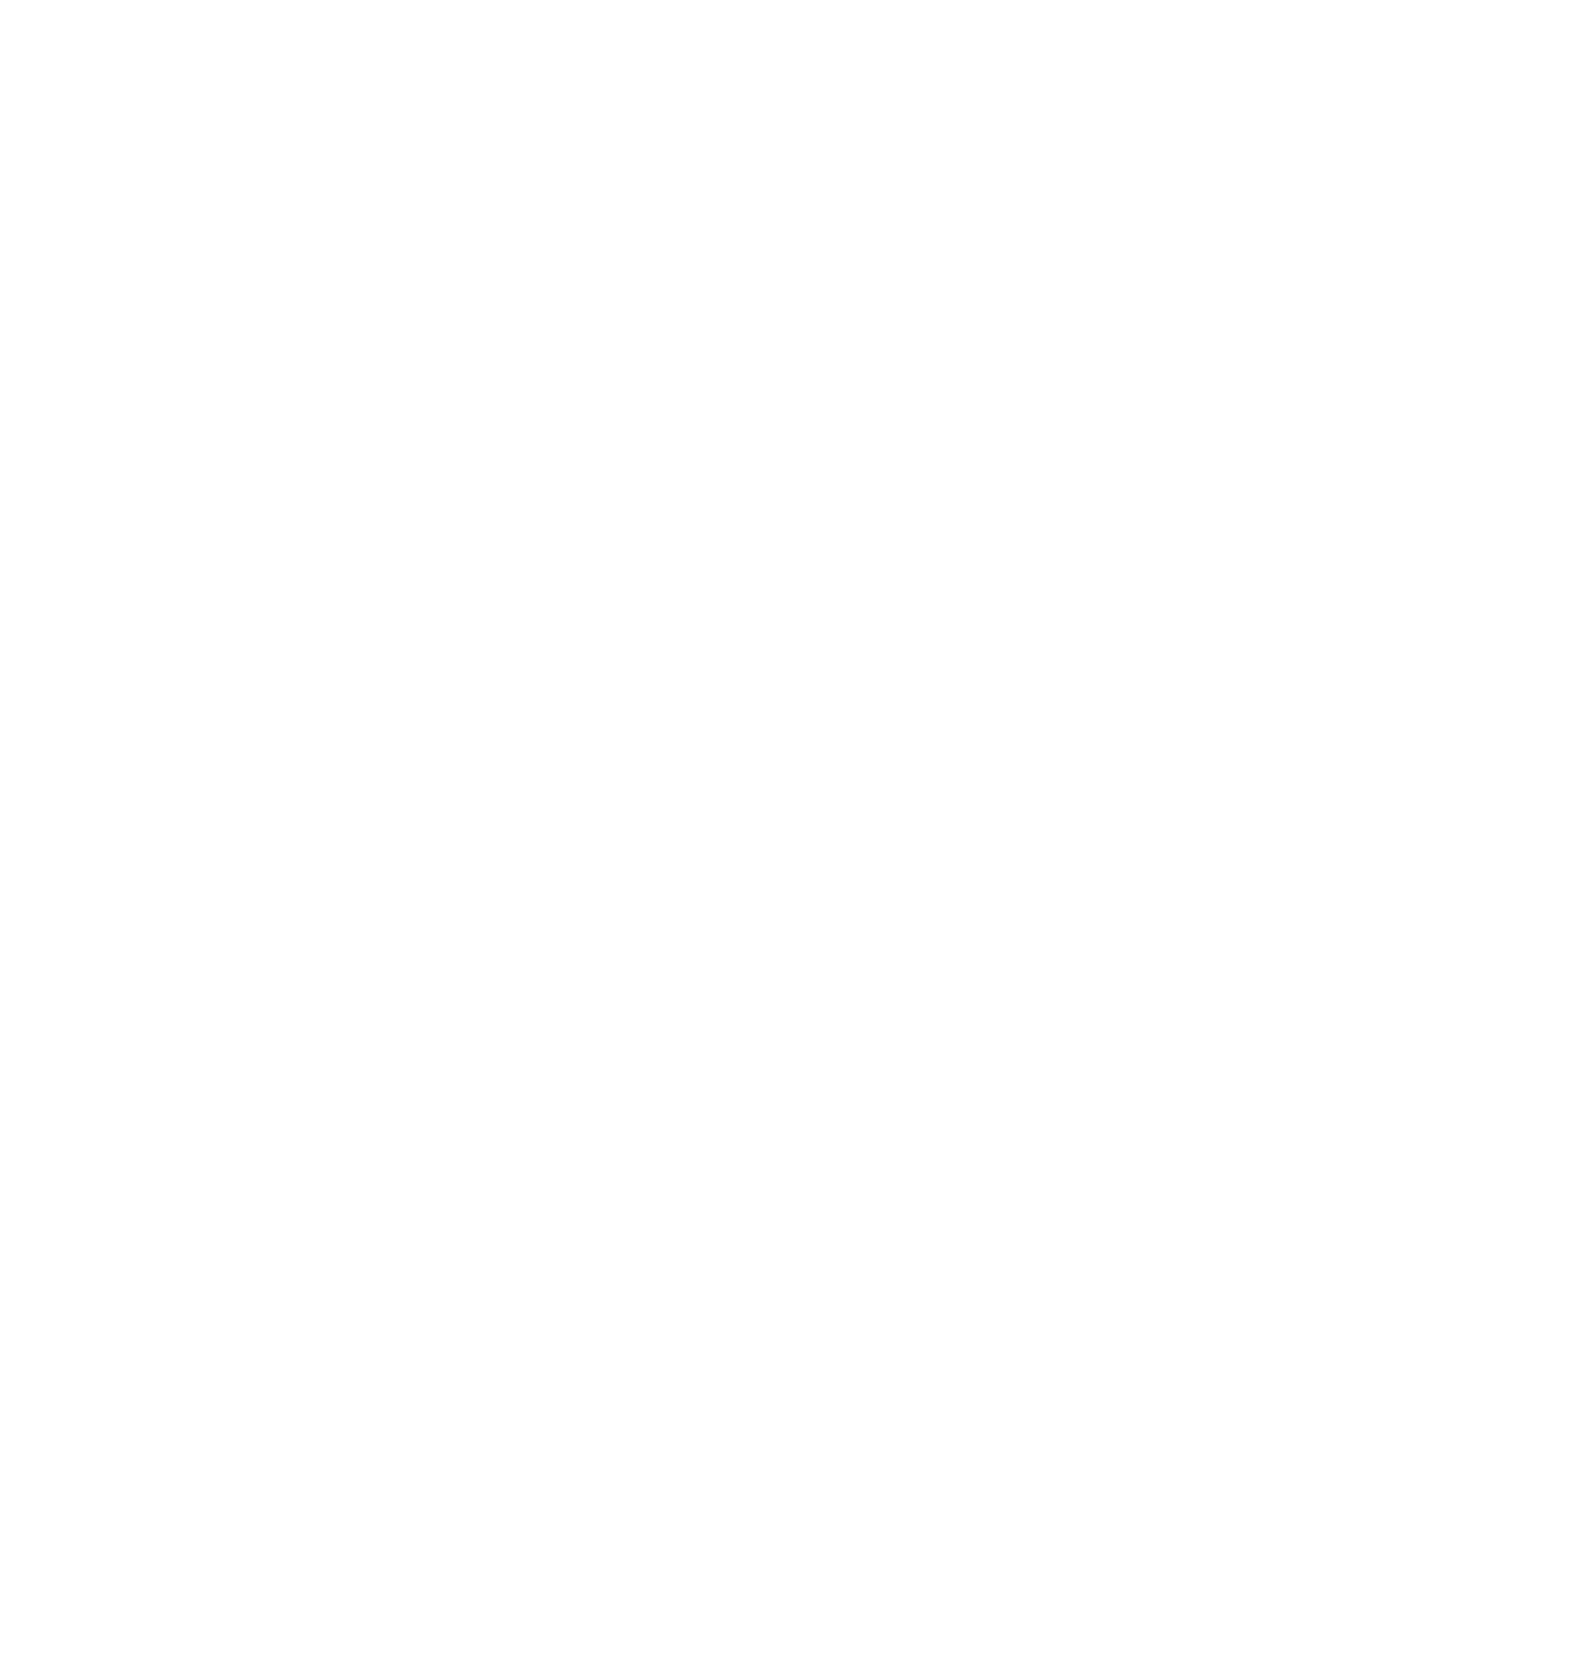 D'Angelo Realty Group White Logo